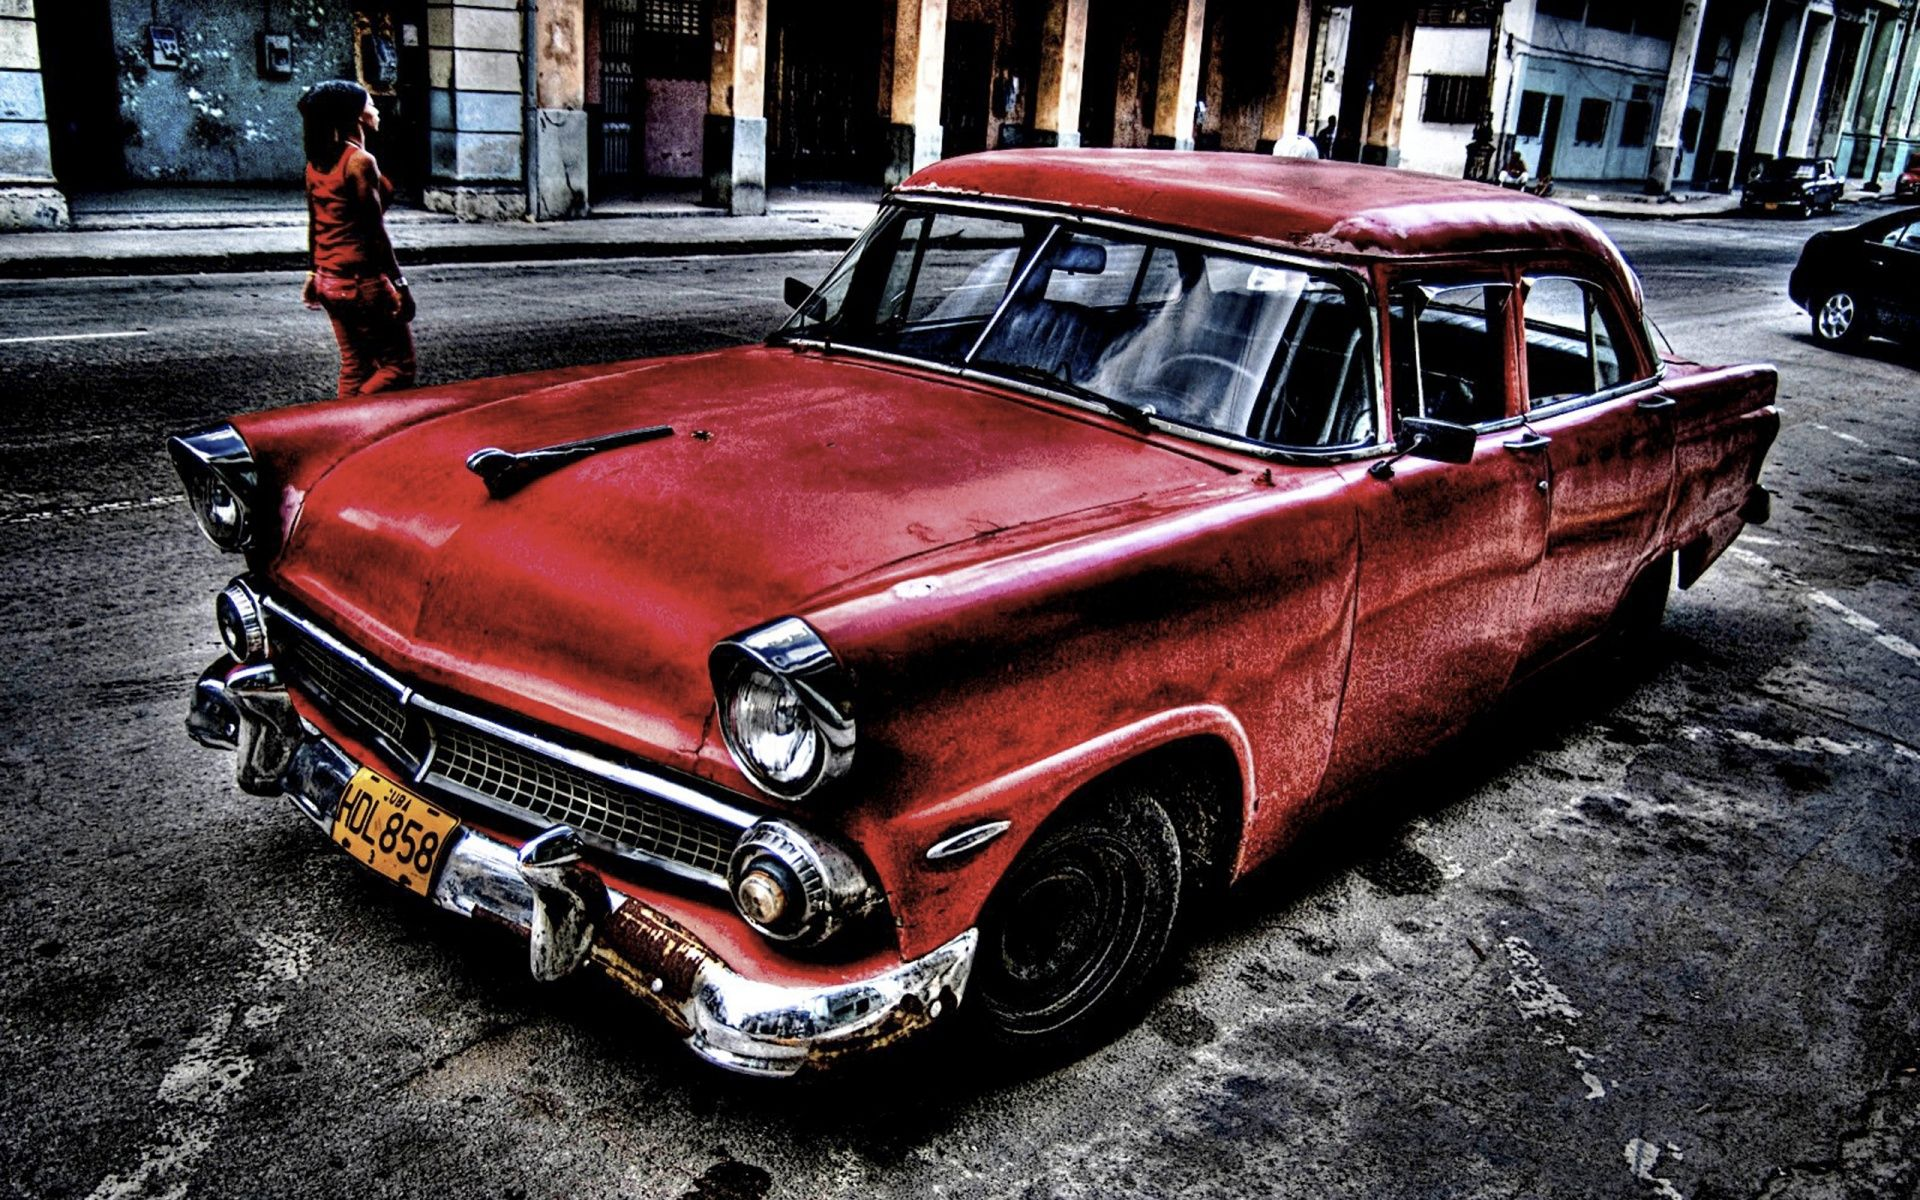 Old car wallpaper get the newest collection of old car wallpaper old car wallpaper get the newest collection of old car wallpaper for your desktop pcs voltagebd Choice Image